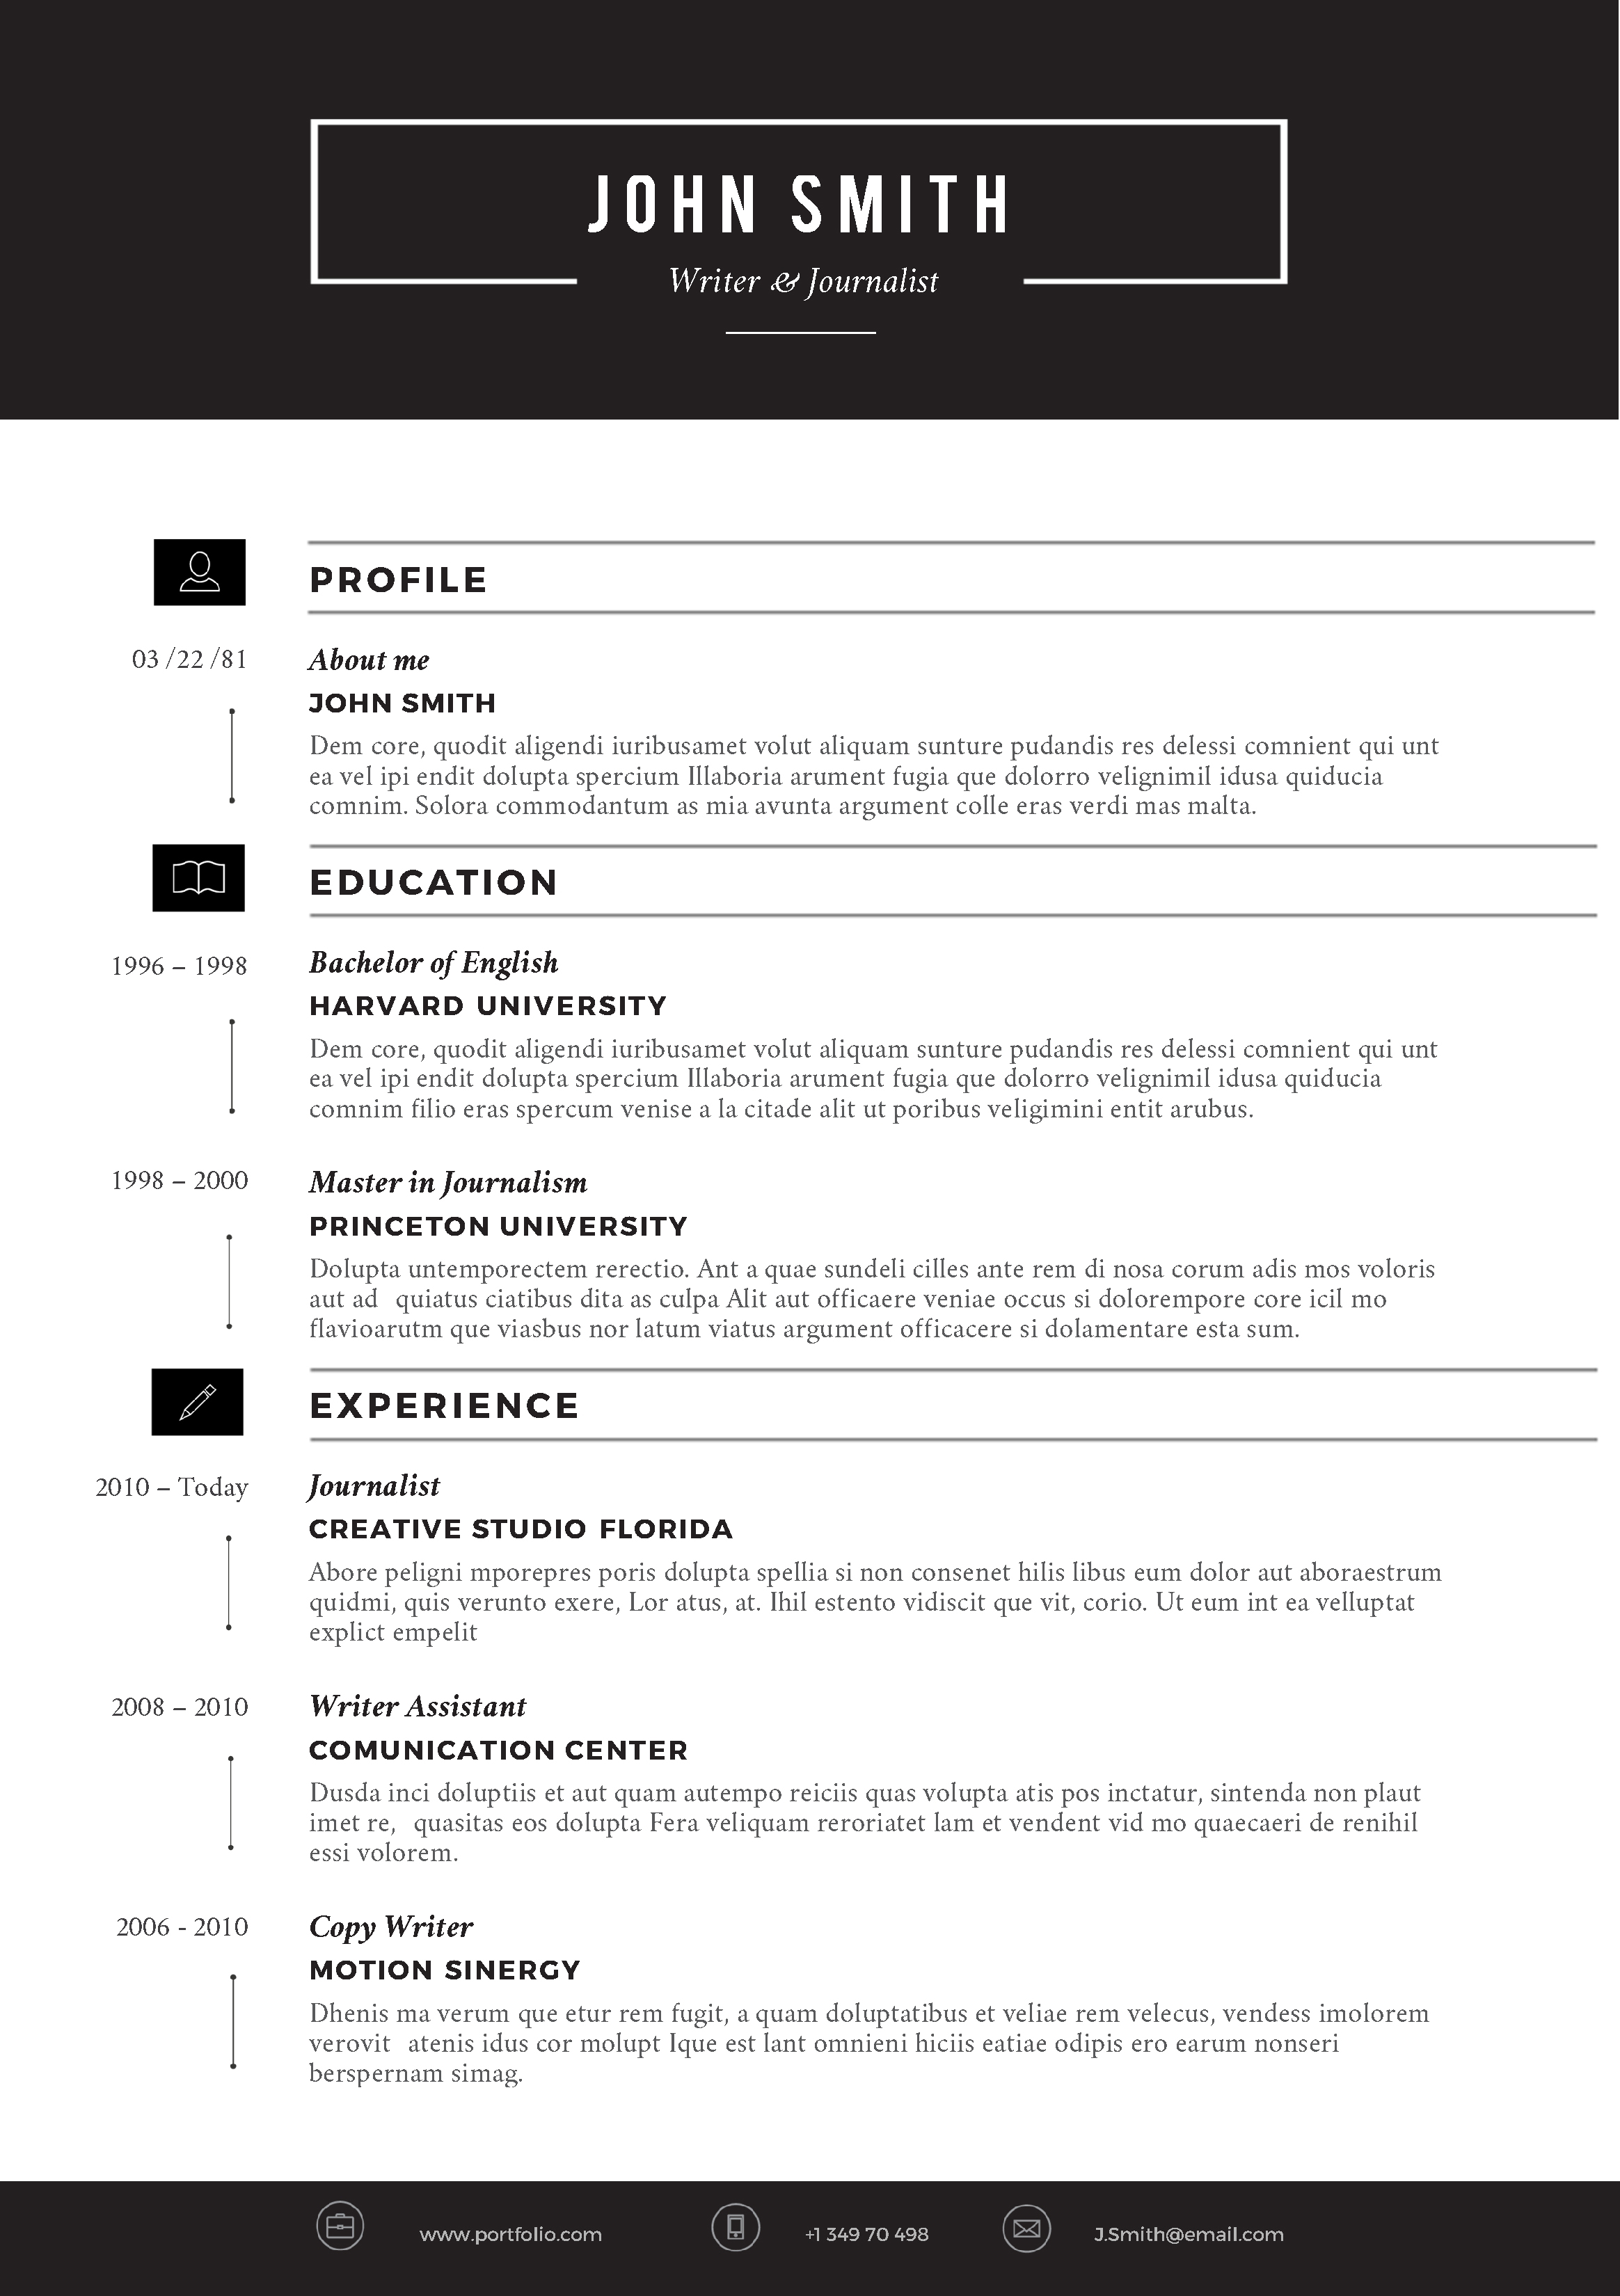 Resume Templates For Word #4